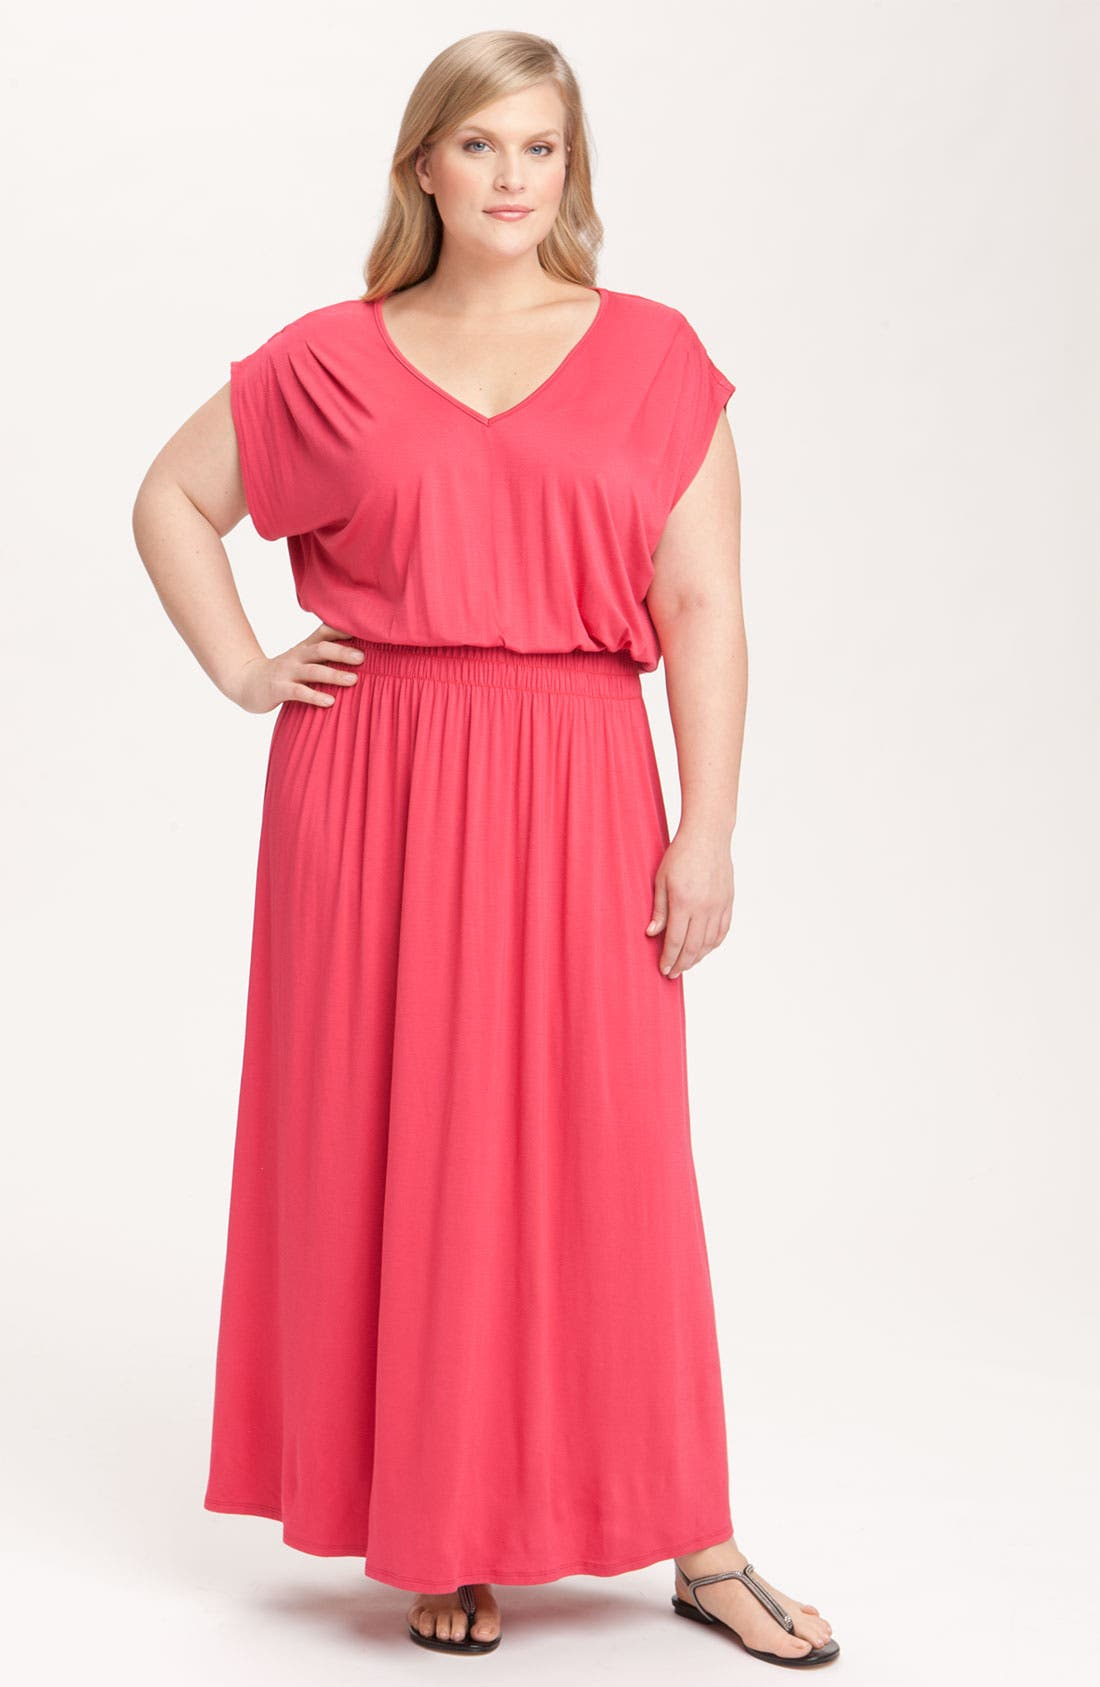 Alternate Image 1 Selected - Olivia Moon V-Neck Knit Maxi Dress (Plus)